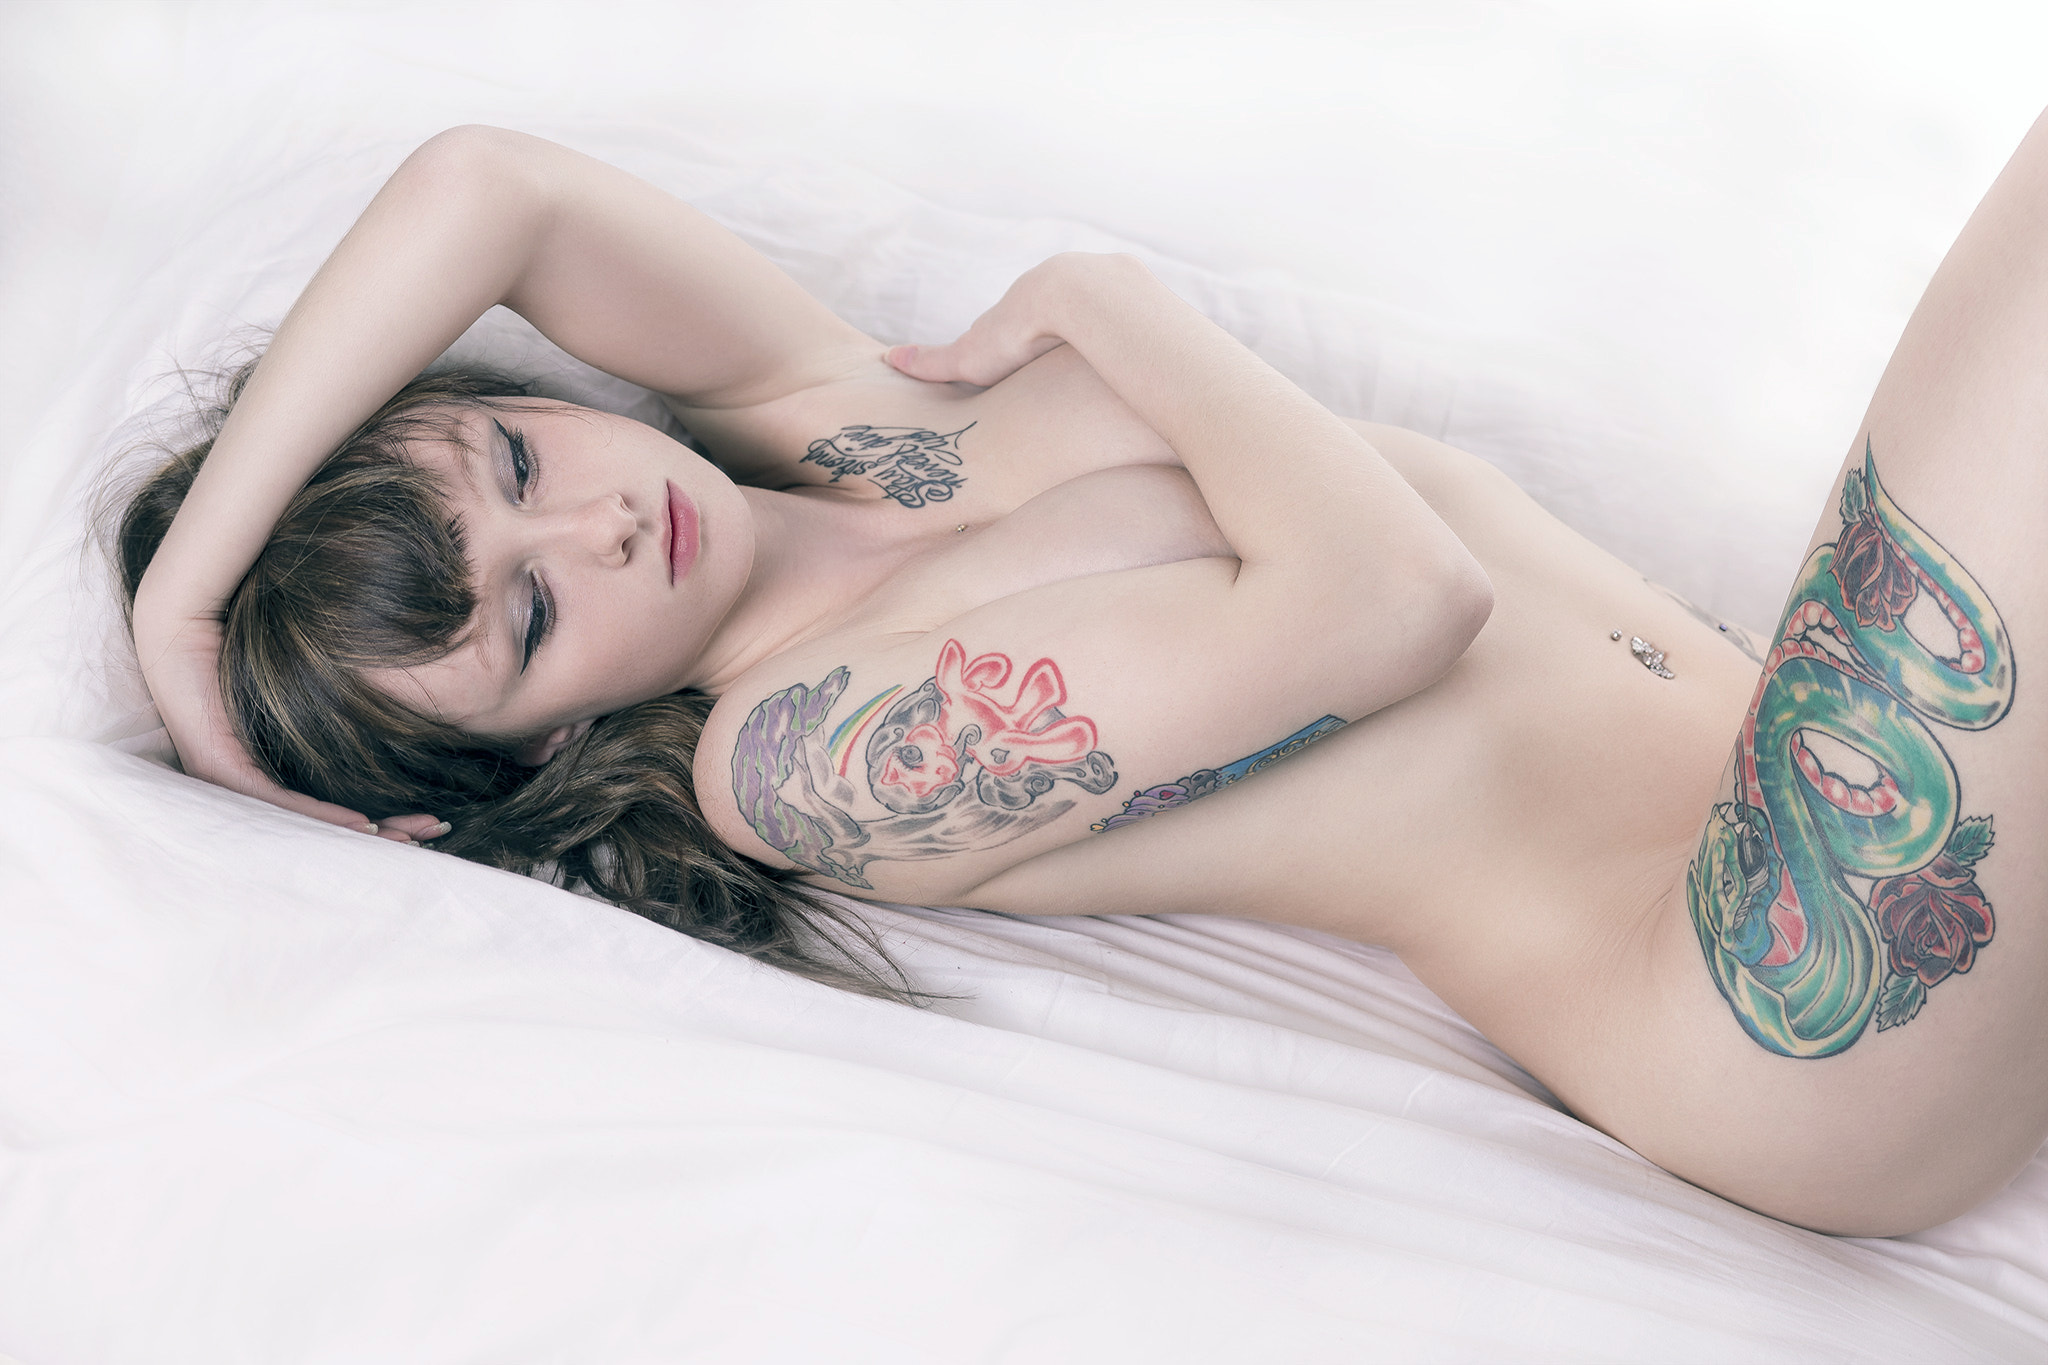 Photograph Tattoos by Guenter Stoehr on 500px